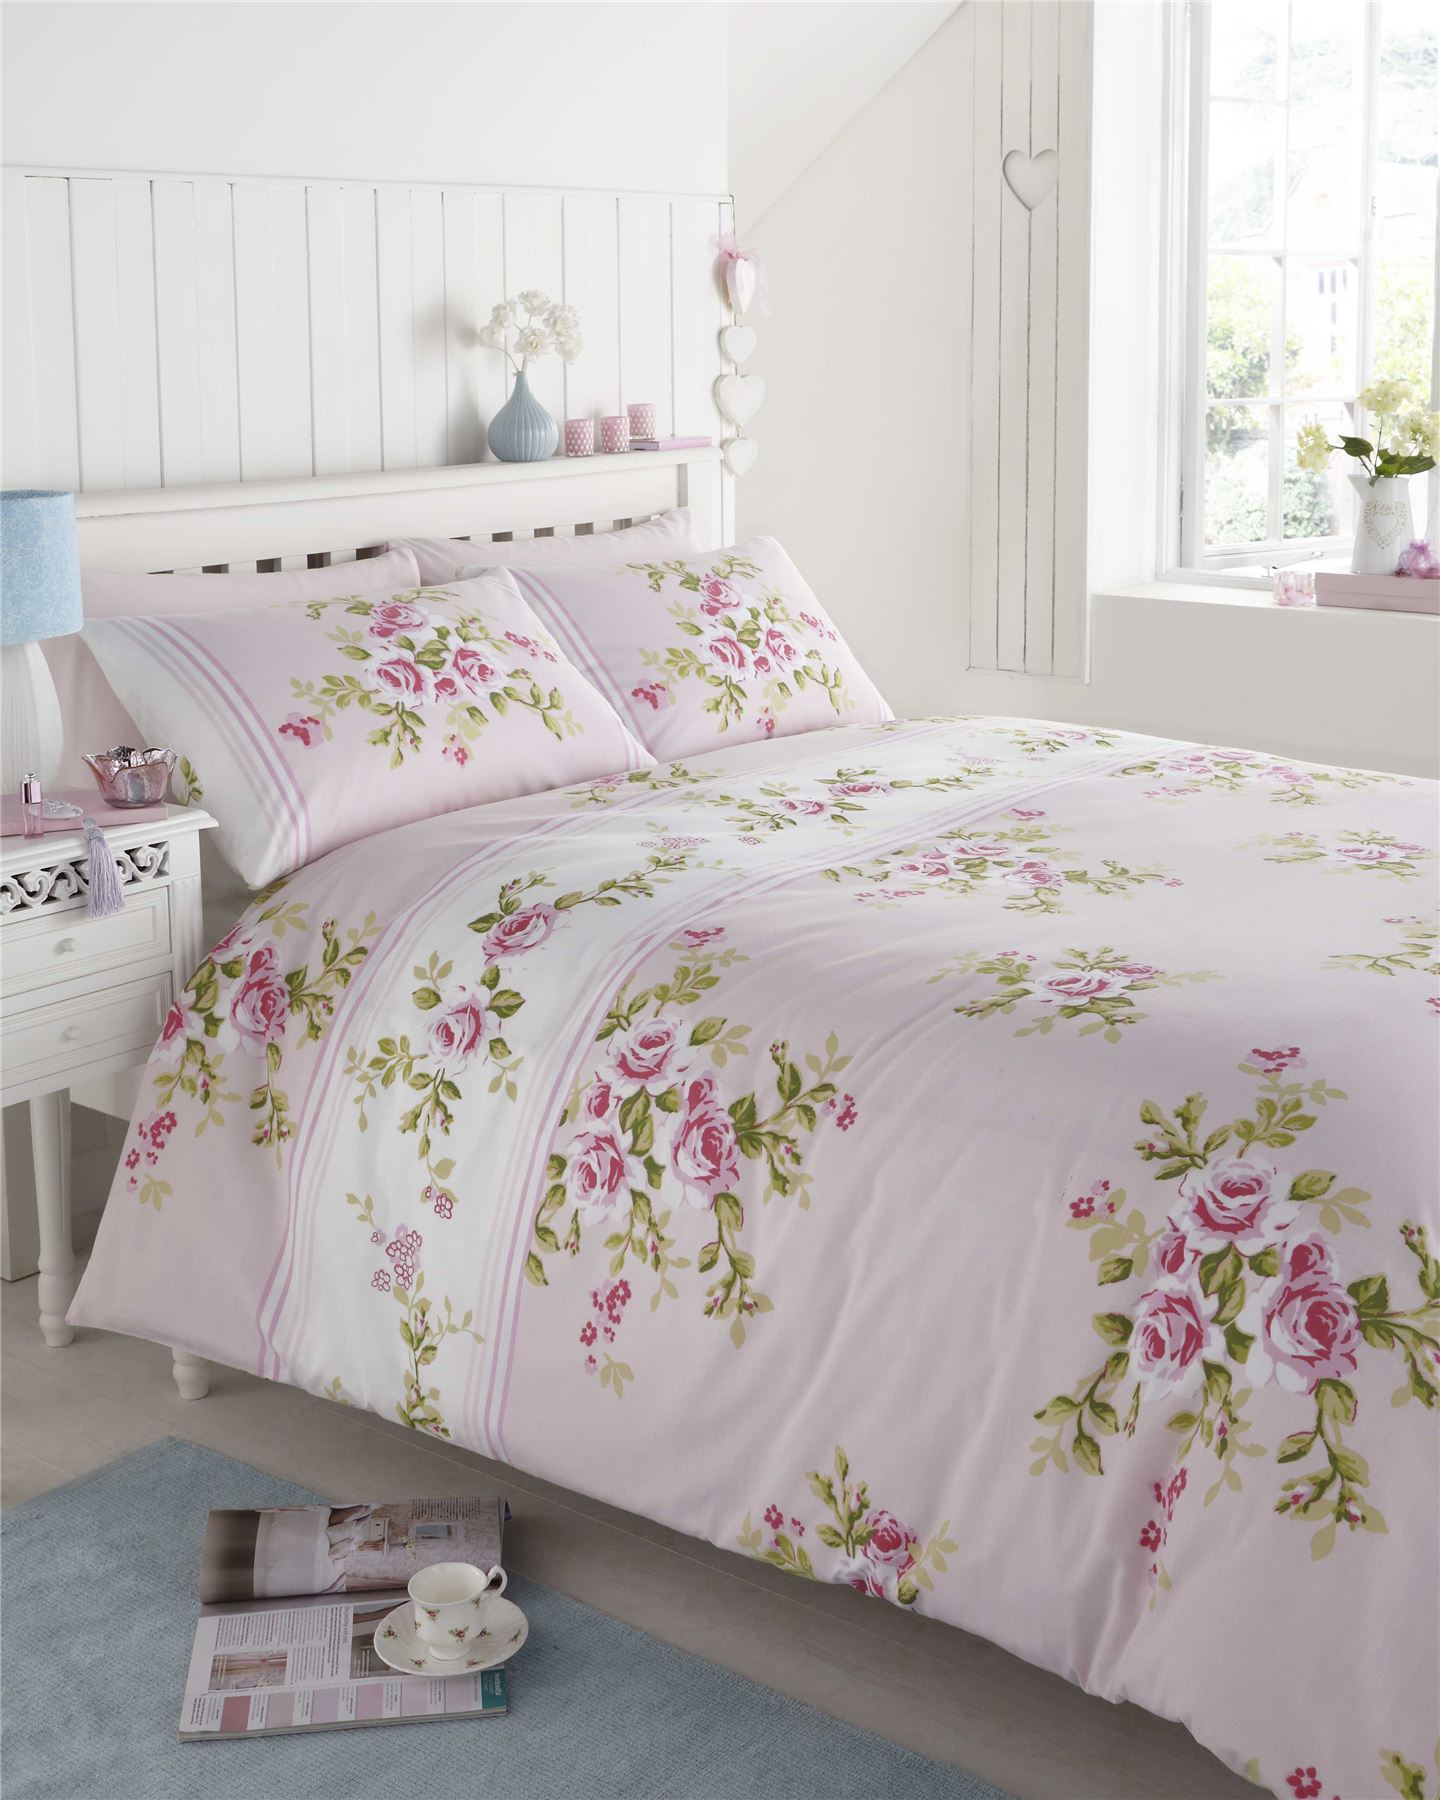 floral modern quilt duvet cover  pillowcase bedding bed sets  - floralmodernquiltduvetcoveramppillowcasebedding